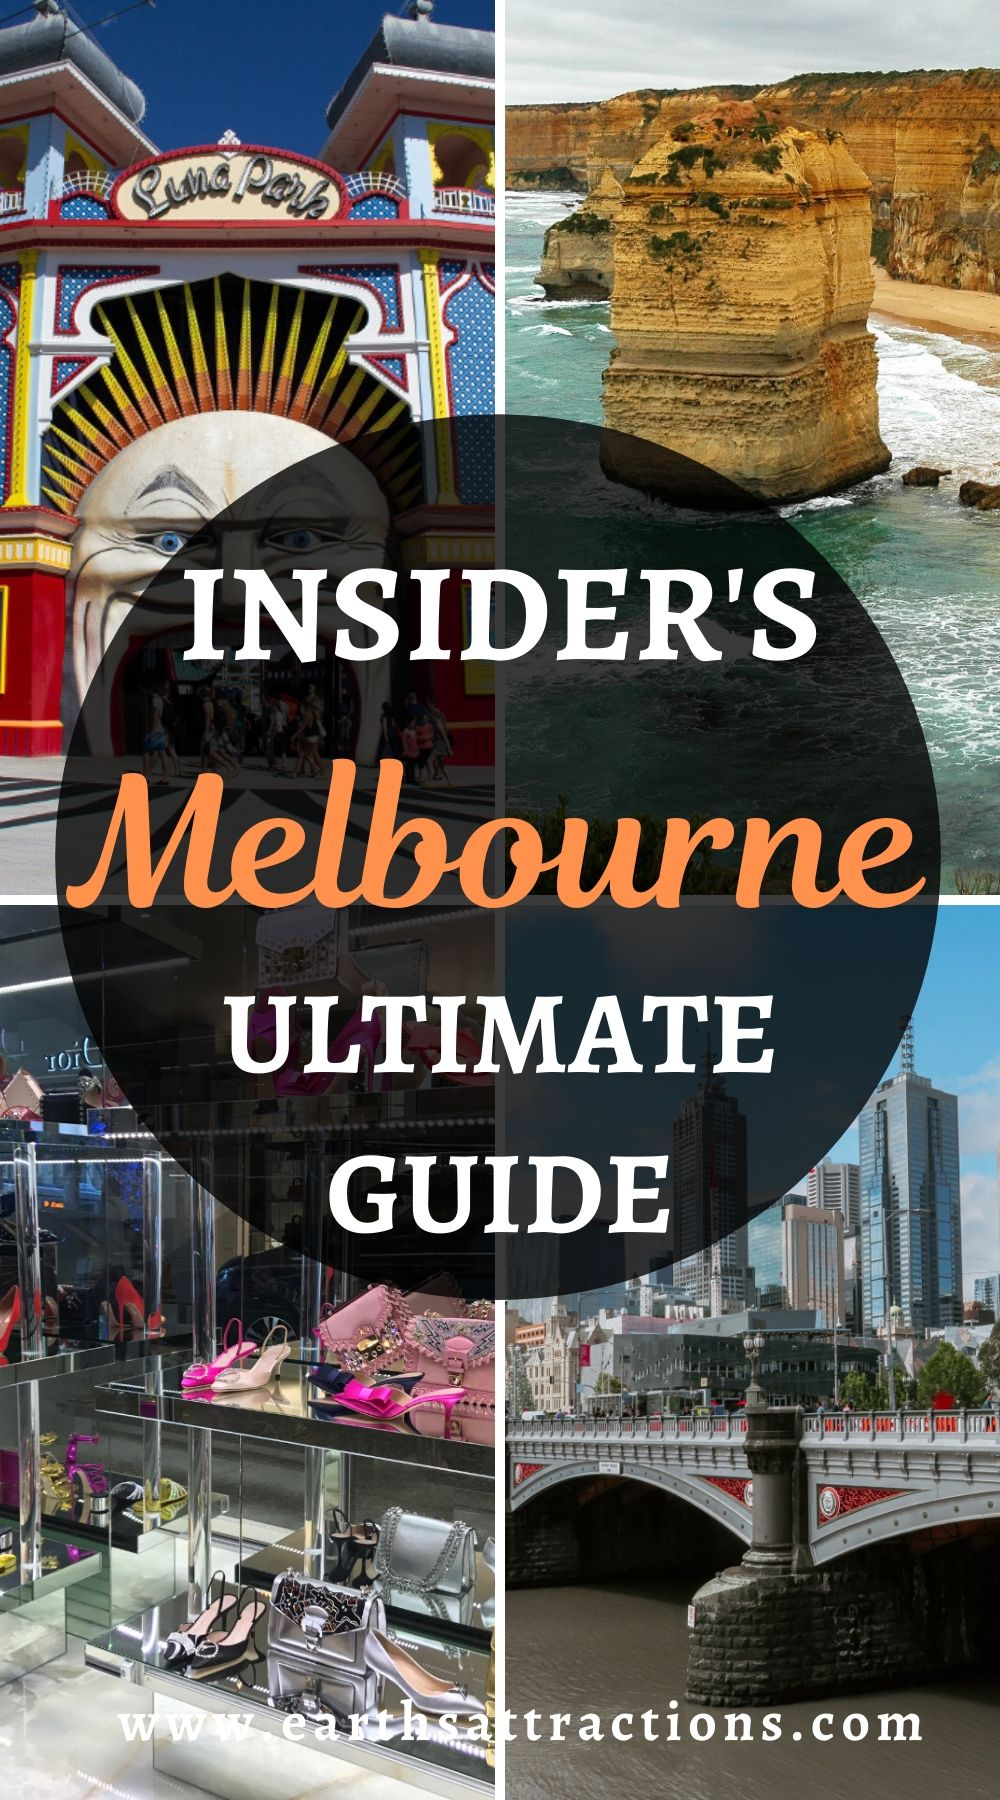 Melbourne travel blog: your complete guide to Melbourne, Australia with the best places to visit in Melbourne, tips for visiting Melbourne, hotels in Melbourne, restaurants in Melburne, and Melbourne sightseeing. Discover the best things to do in Melbourne, including off the beaten path attractions in Melbourne from this Melbourne city guide. #melbourne #australia #travelguide #melbournethingstodo #earthsattractions #traveltips